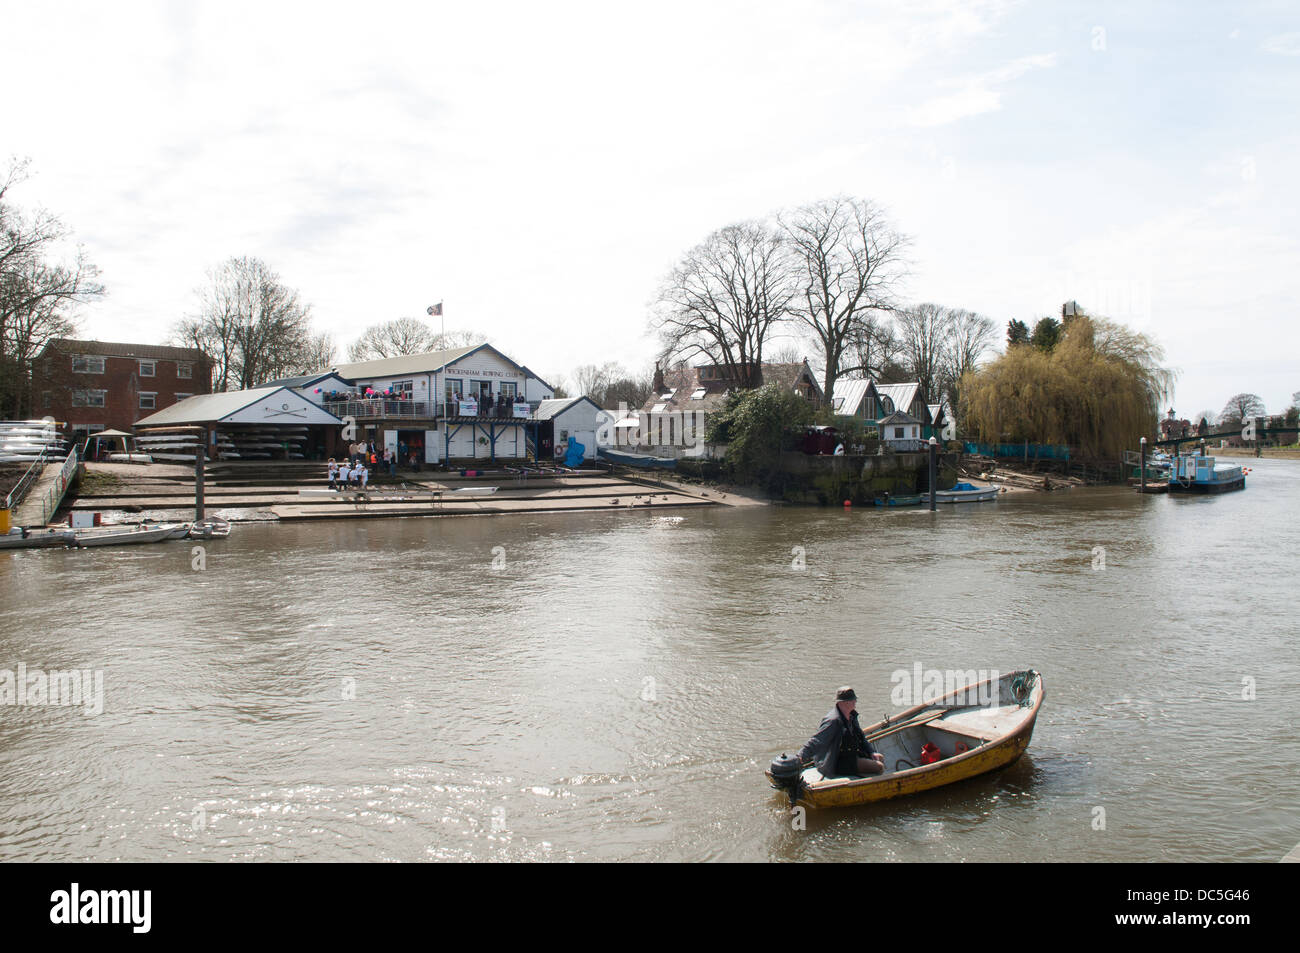 The Thames with the Twickenham Rowing club in the background, England, UK. - Stock Image